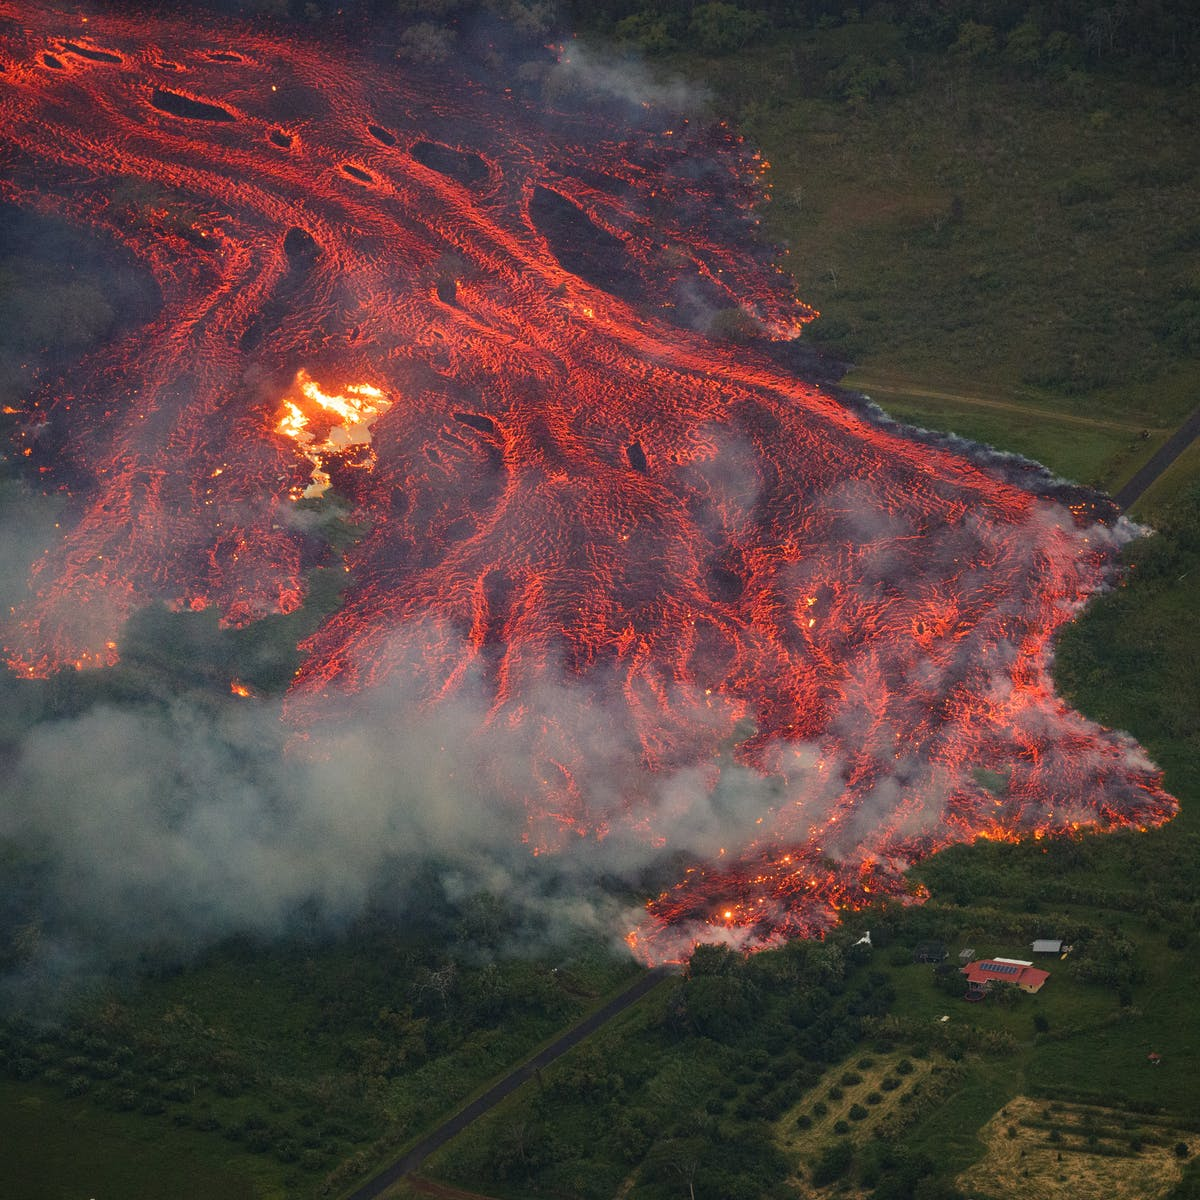 Lava in Hawai'i is reaching the ocean, creating new land but also